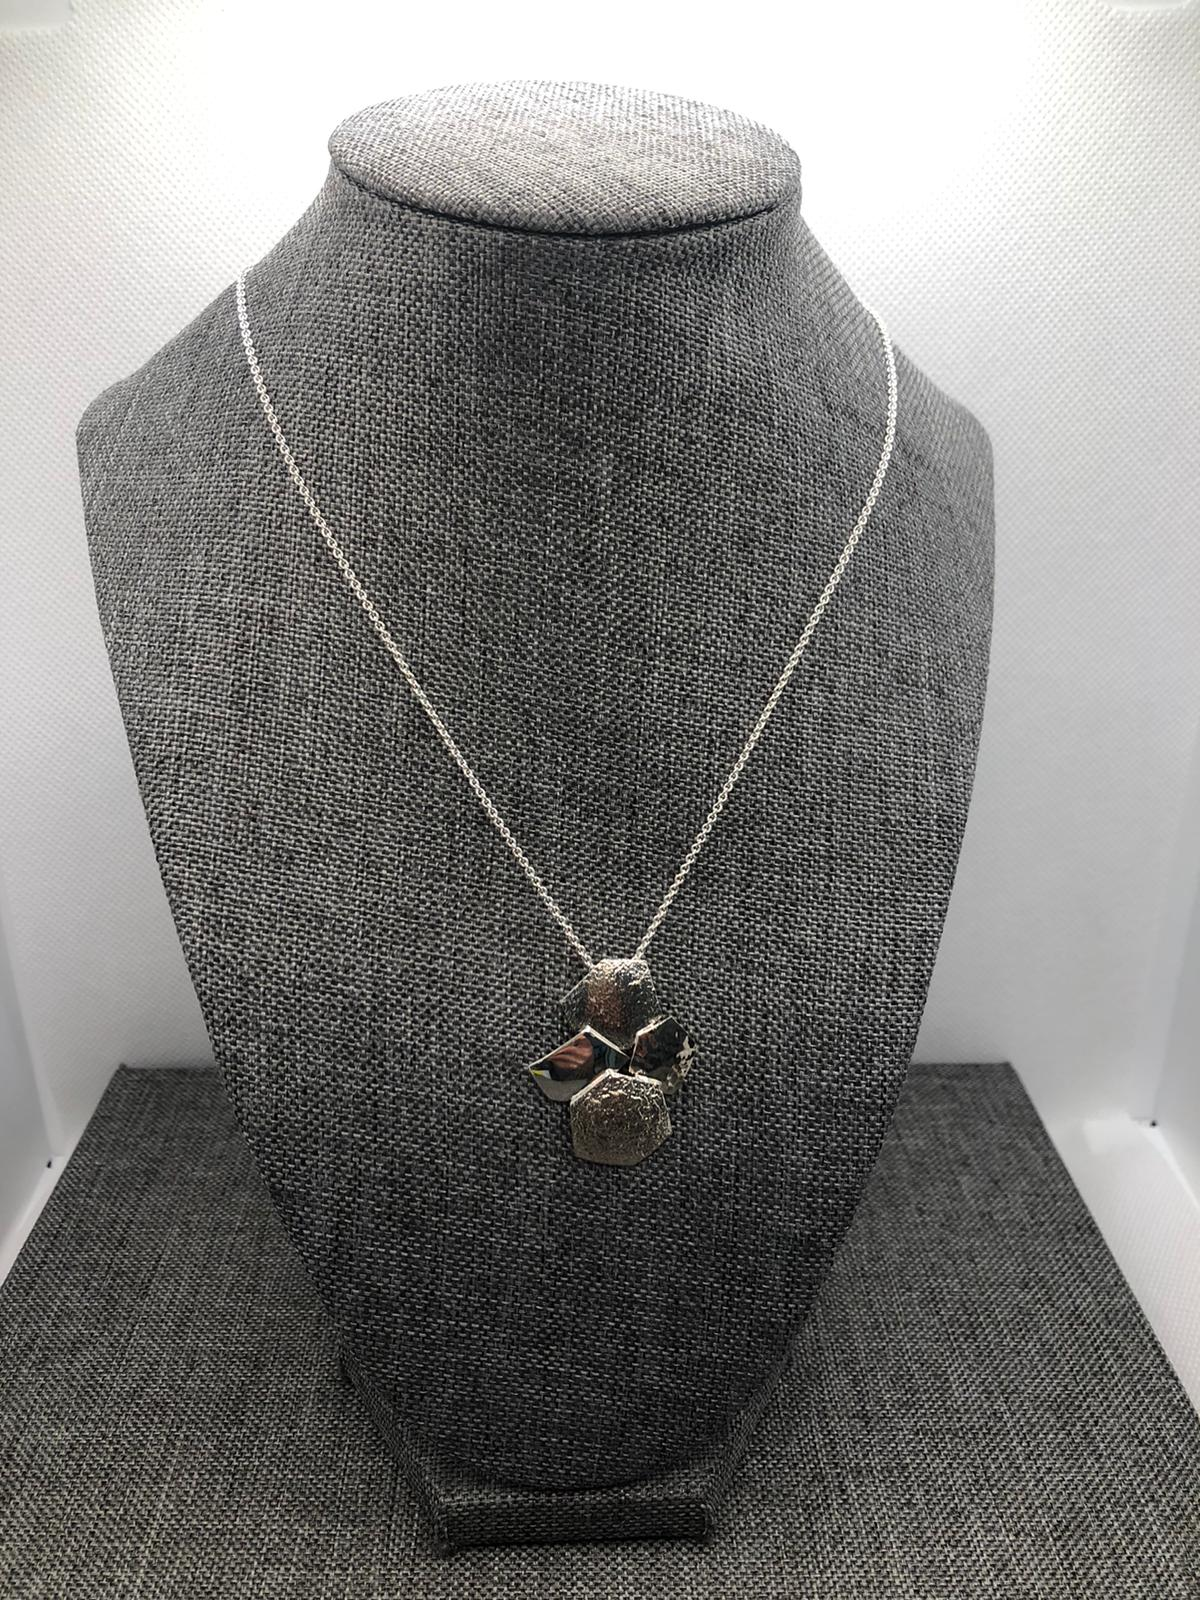 Pavement Necklace, Sterling Silver by Chris Lewis